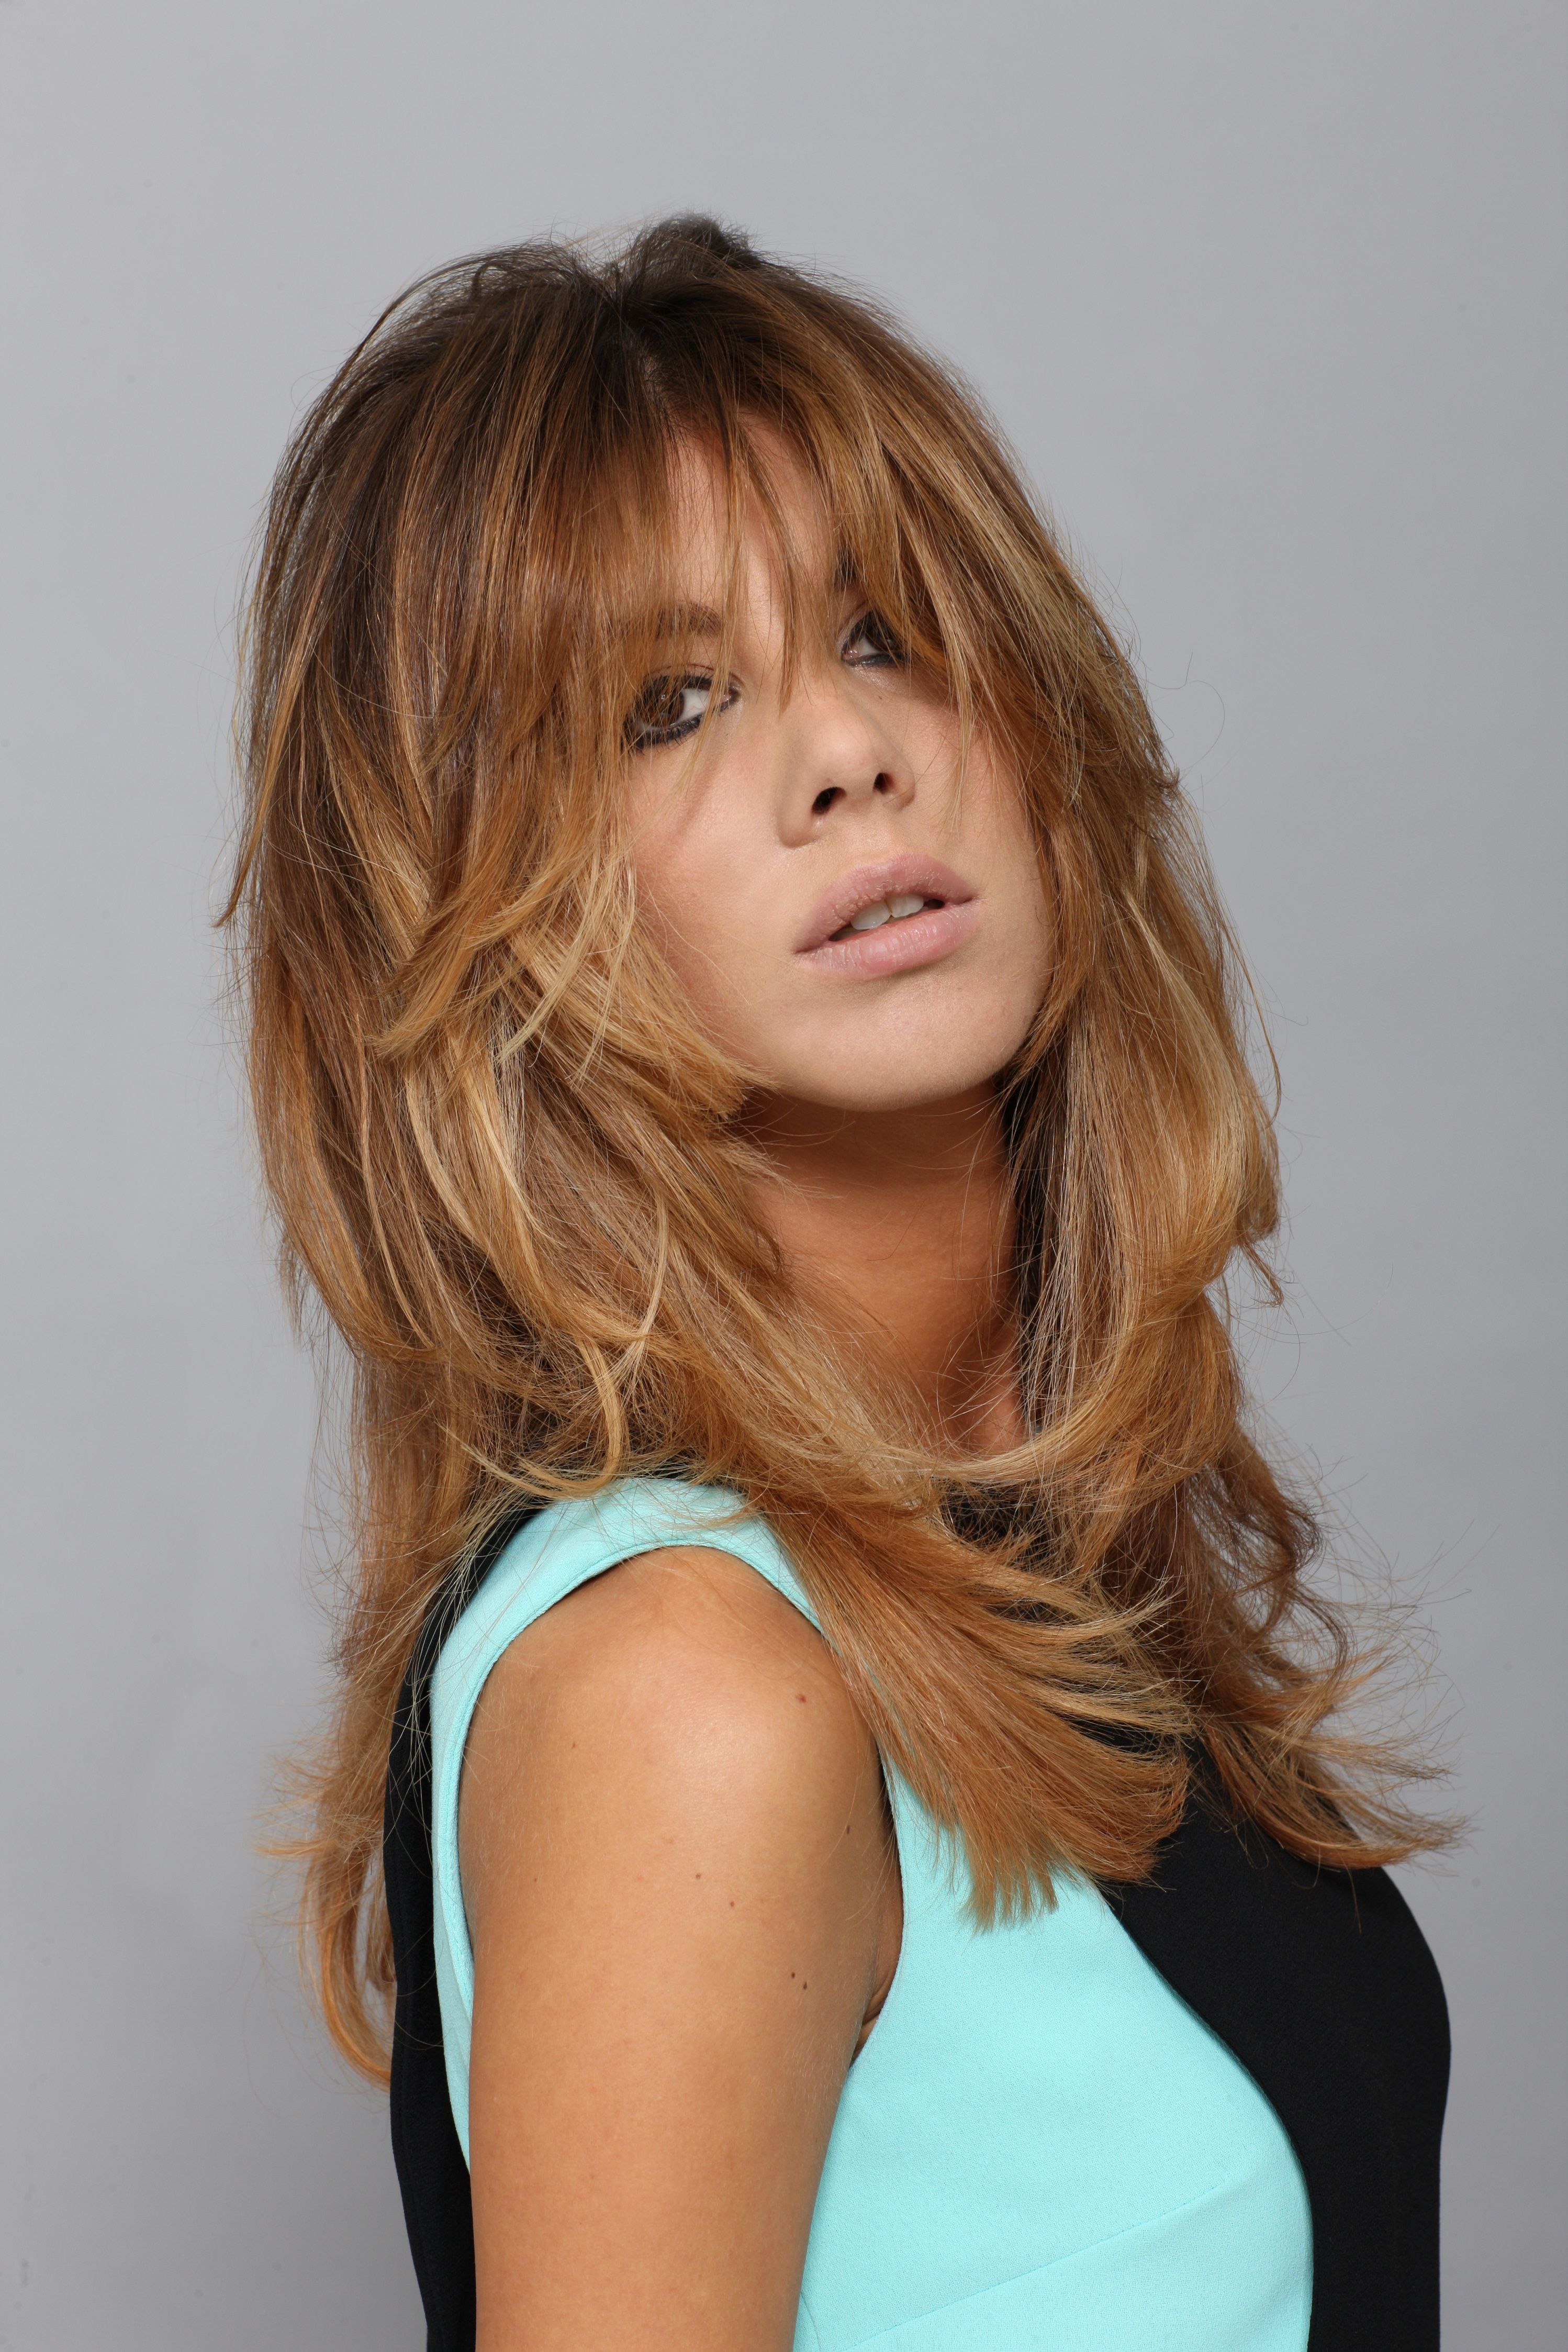 Hairstyle by our Creative Director Stefano Lorenzi ...